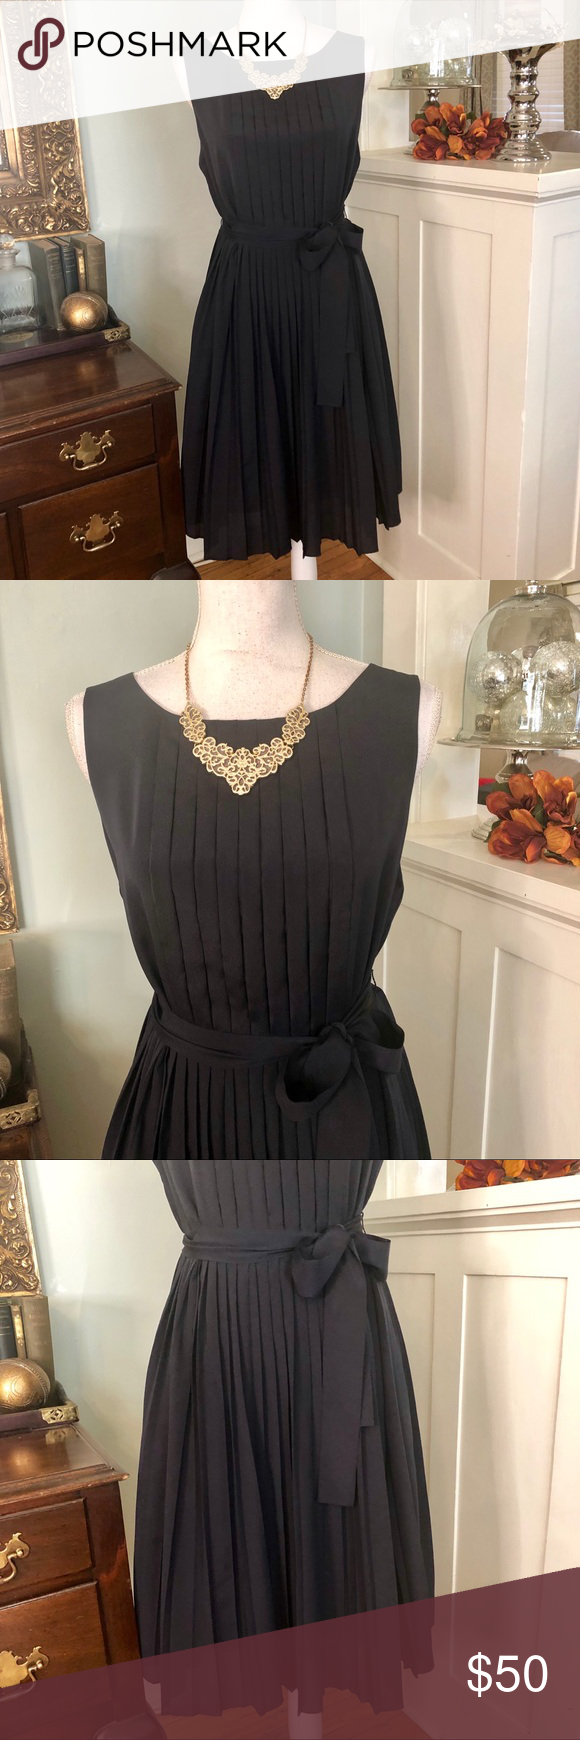 15130c5f910 Talbots Navy Blue Pleated Dress Belted Size 8 Talbots Navy Blue Pleated  Dress. Pleated chest